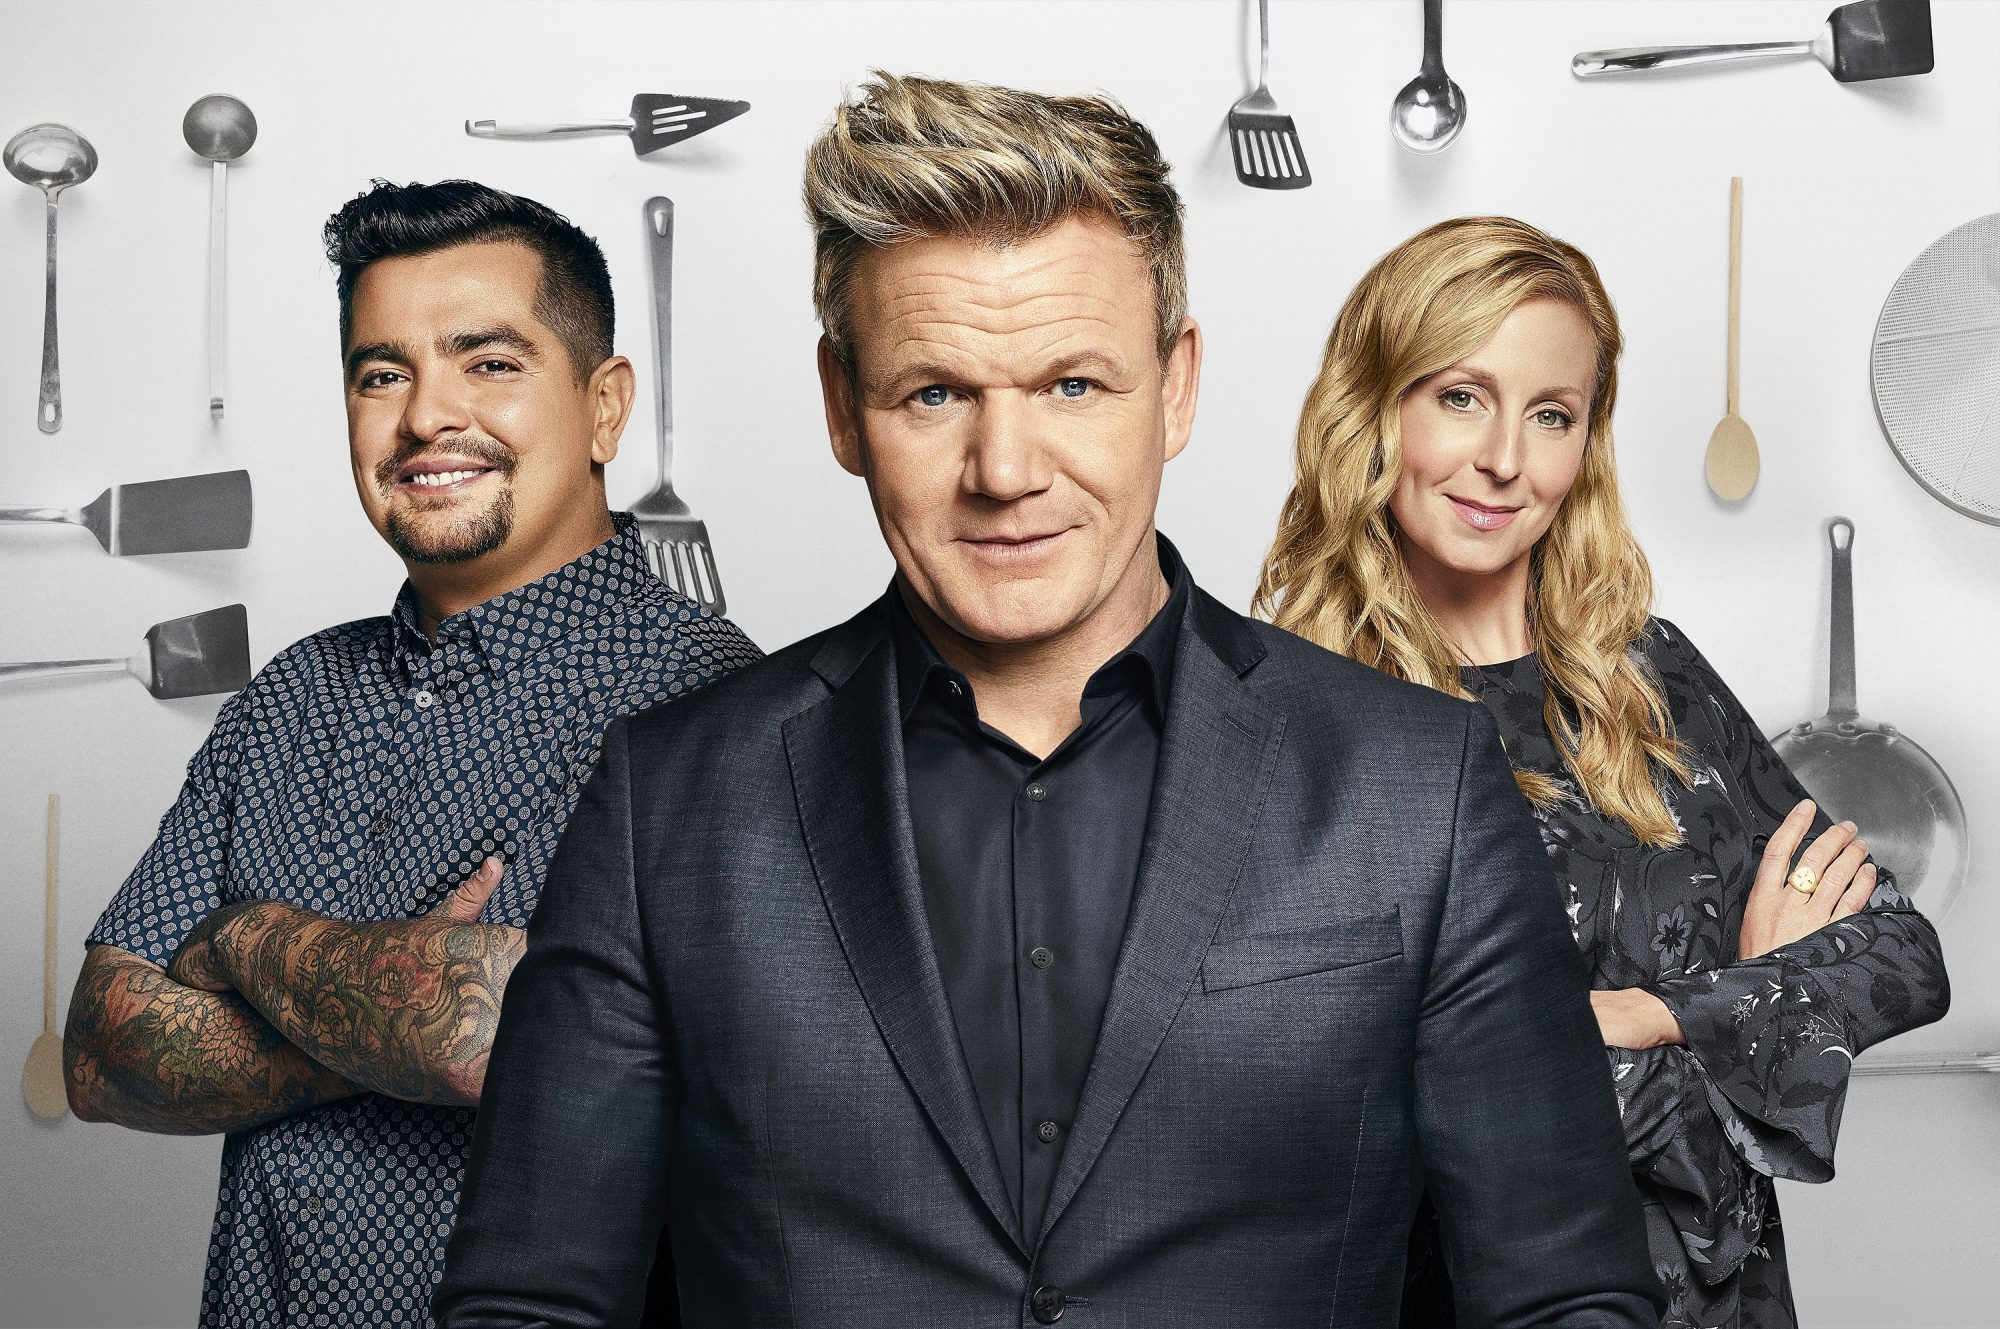 What Gordon Ramsay Is Really Like on 'MasterChef'